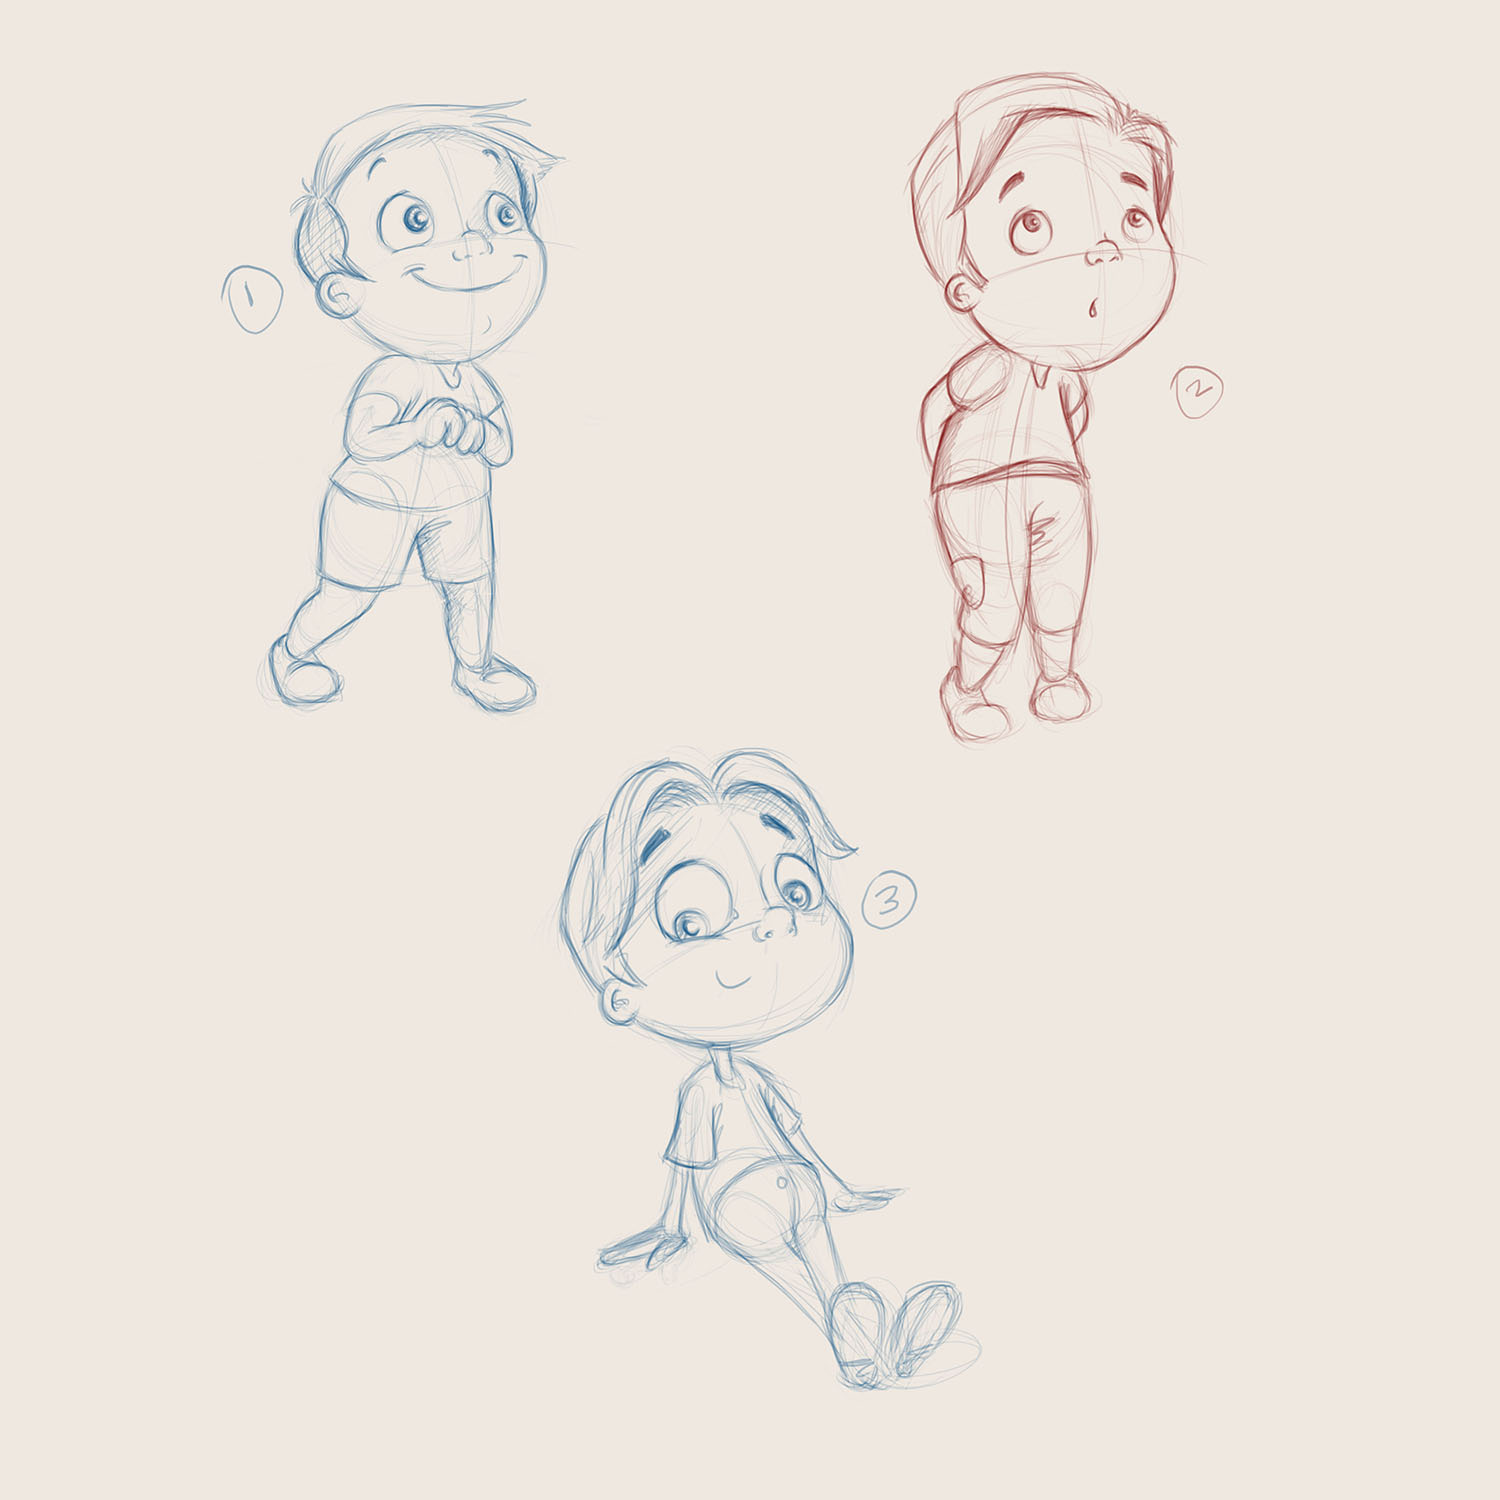 Boy sketches